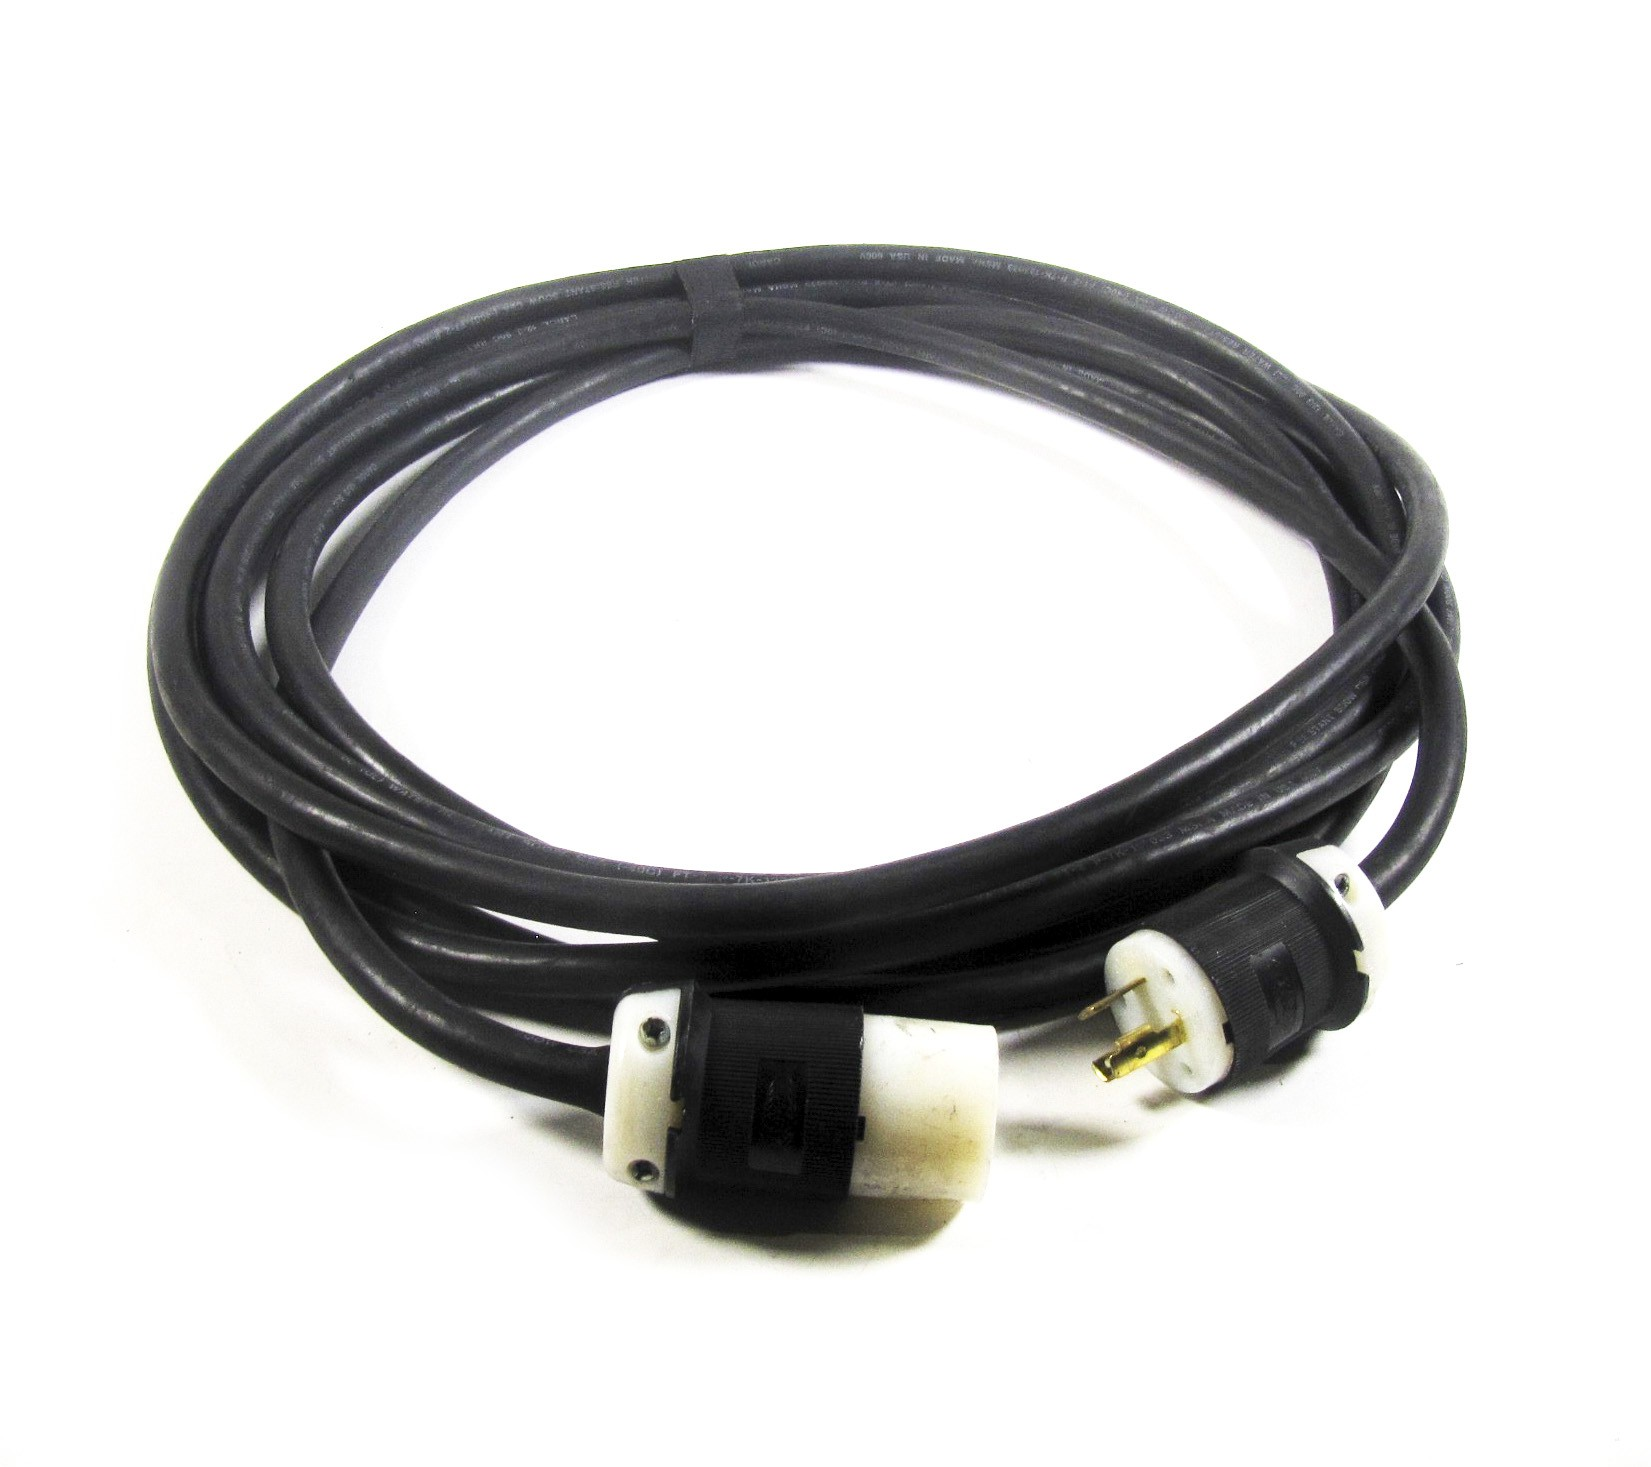 NEW TMB 12/3 SJO L6-20 Cable 25 ft